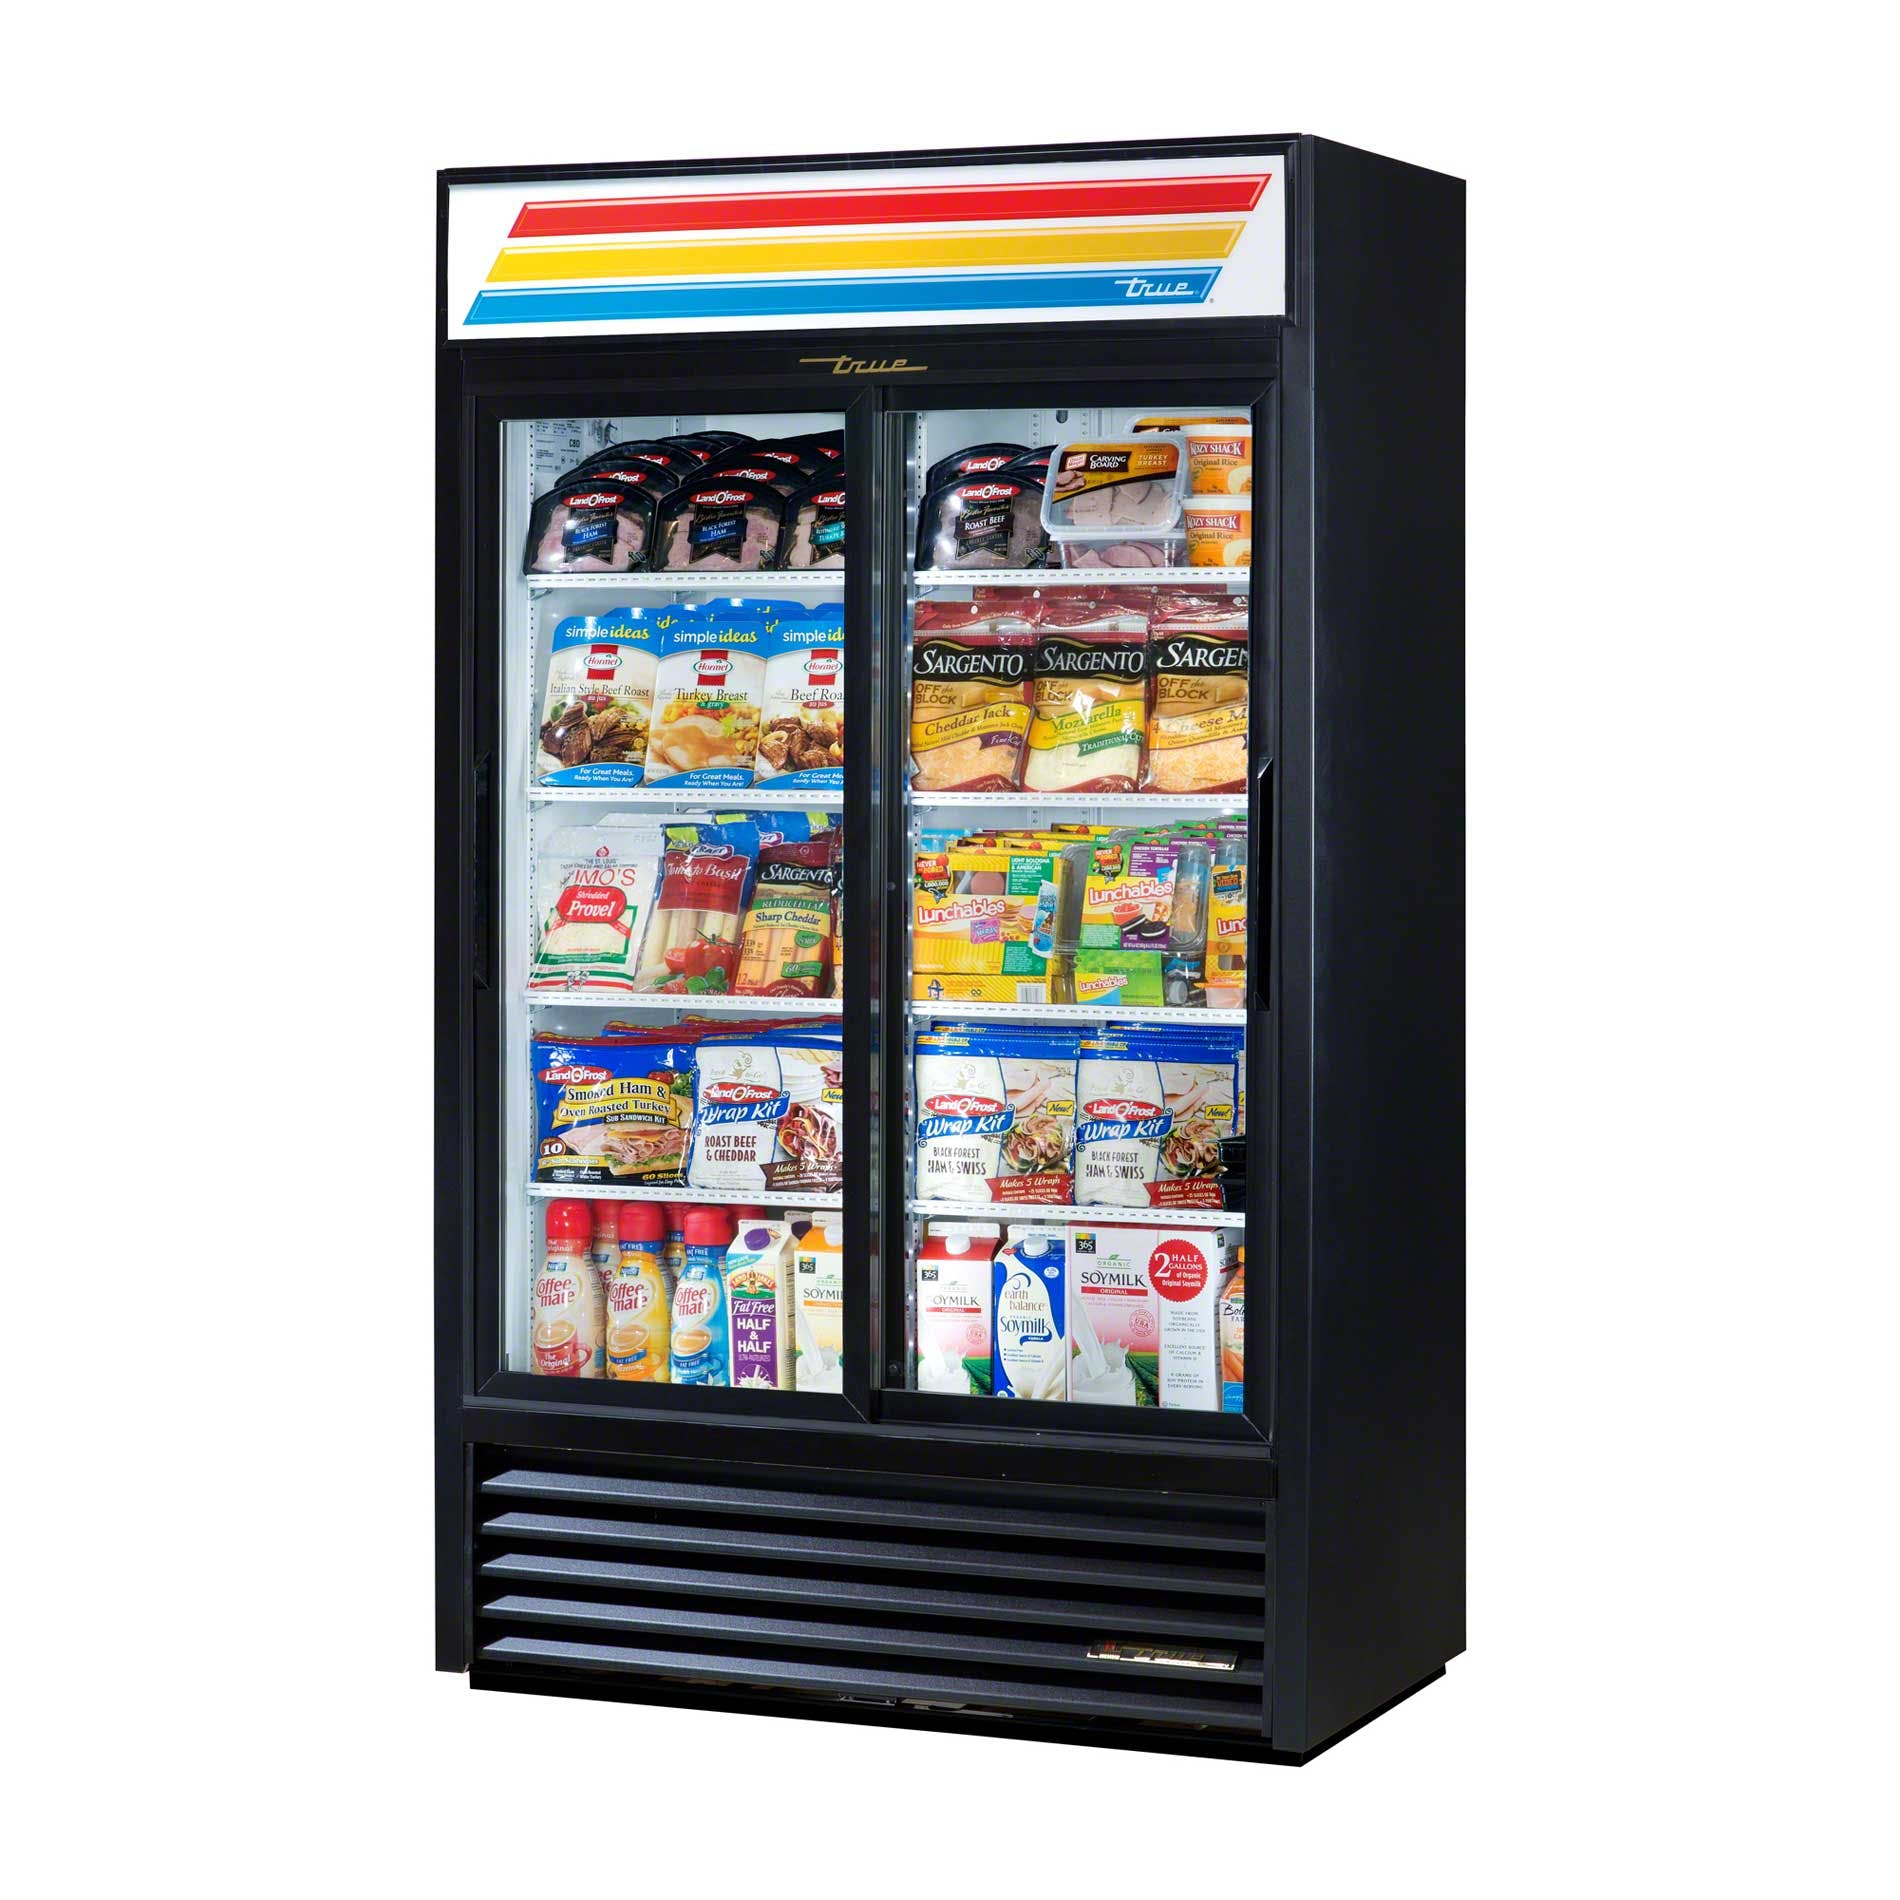 "True - GDM-41SL-LD 47"" Slide Glass Door Merchandiser Refrigerator LED Commercial refrigerator sold by Food Service Warehouse"